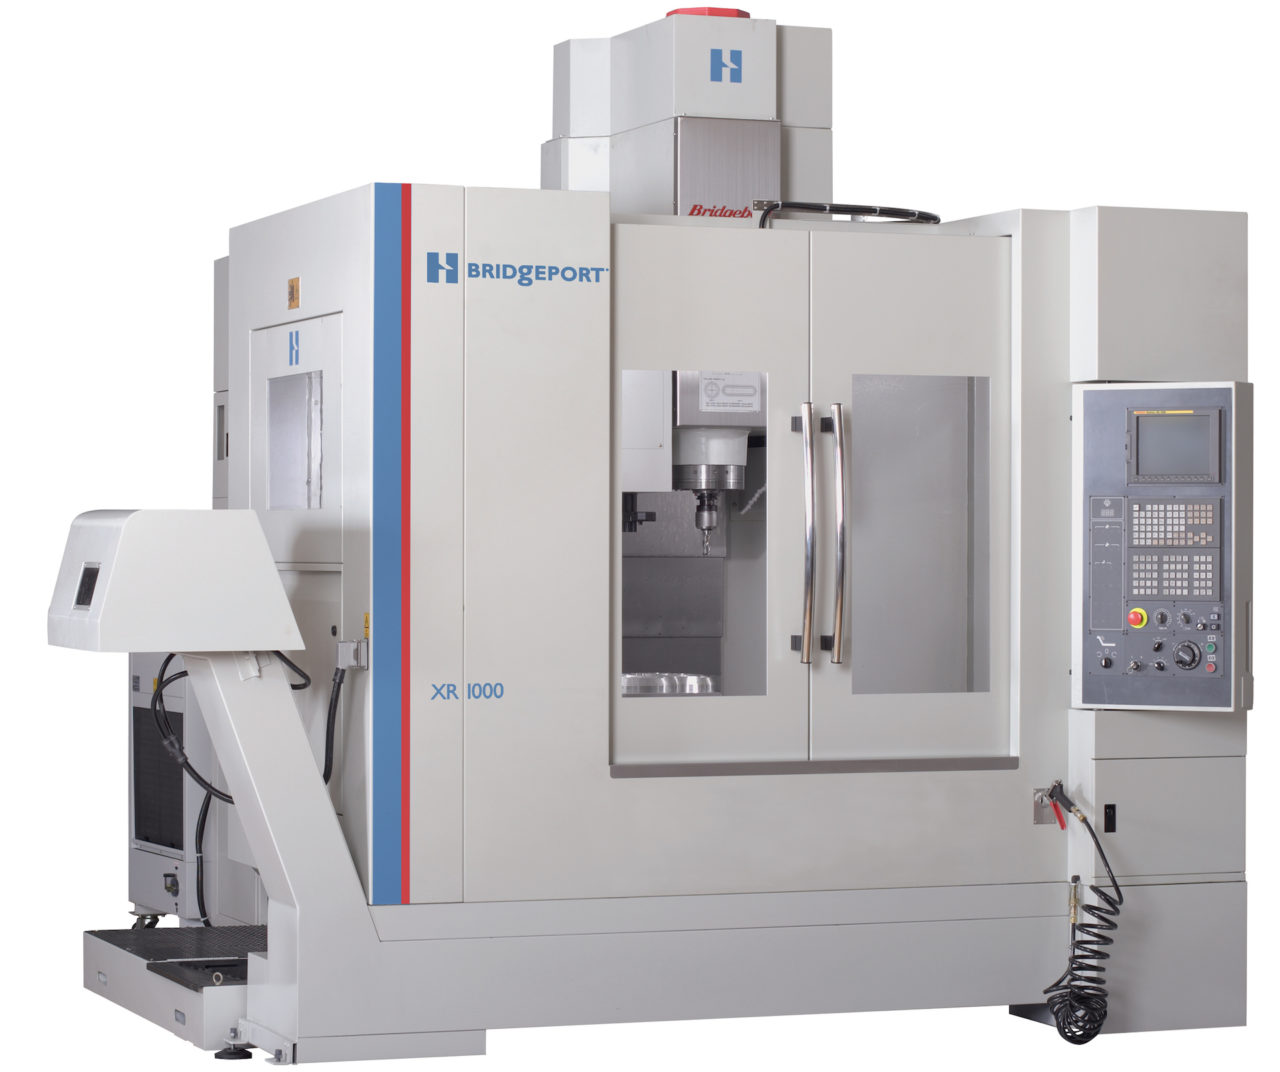 Hardimg-XR_1000-3-axis-mill-1280x1072.jpg